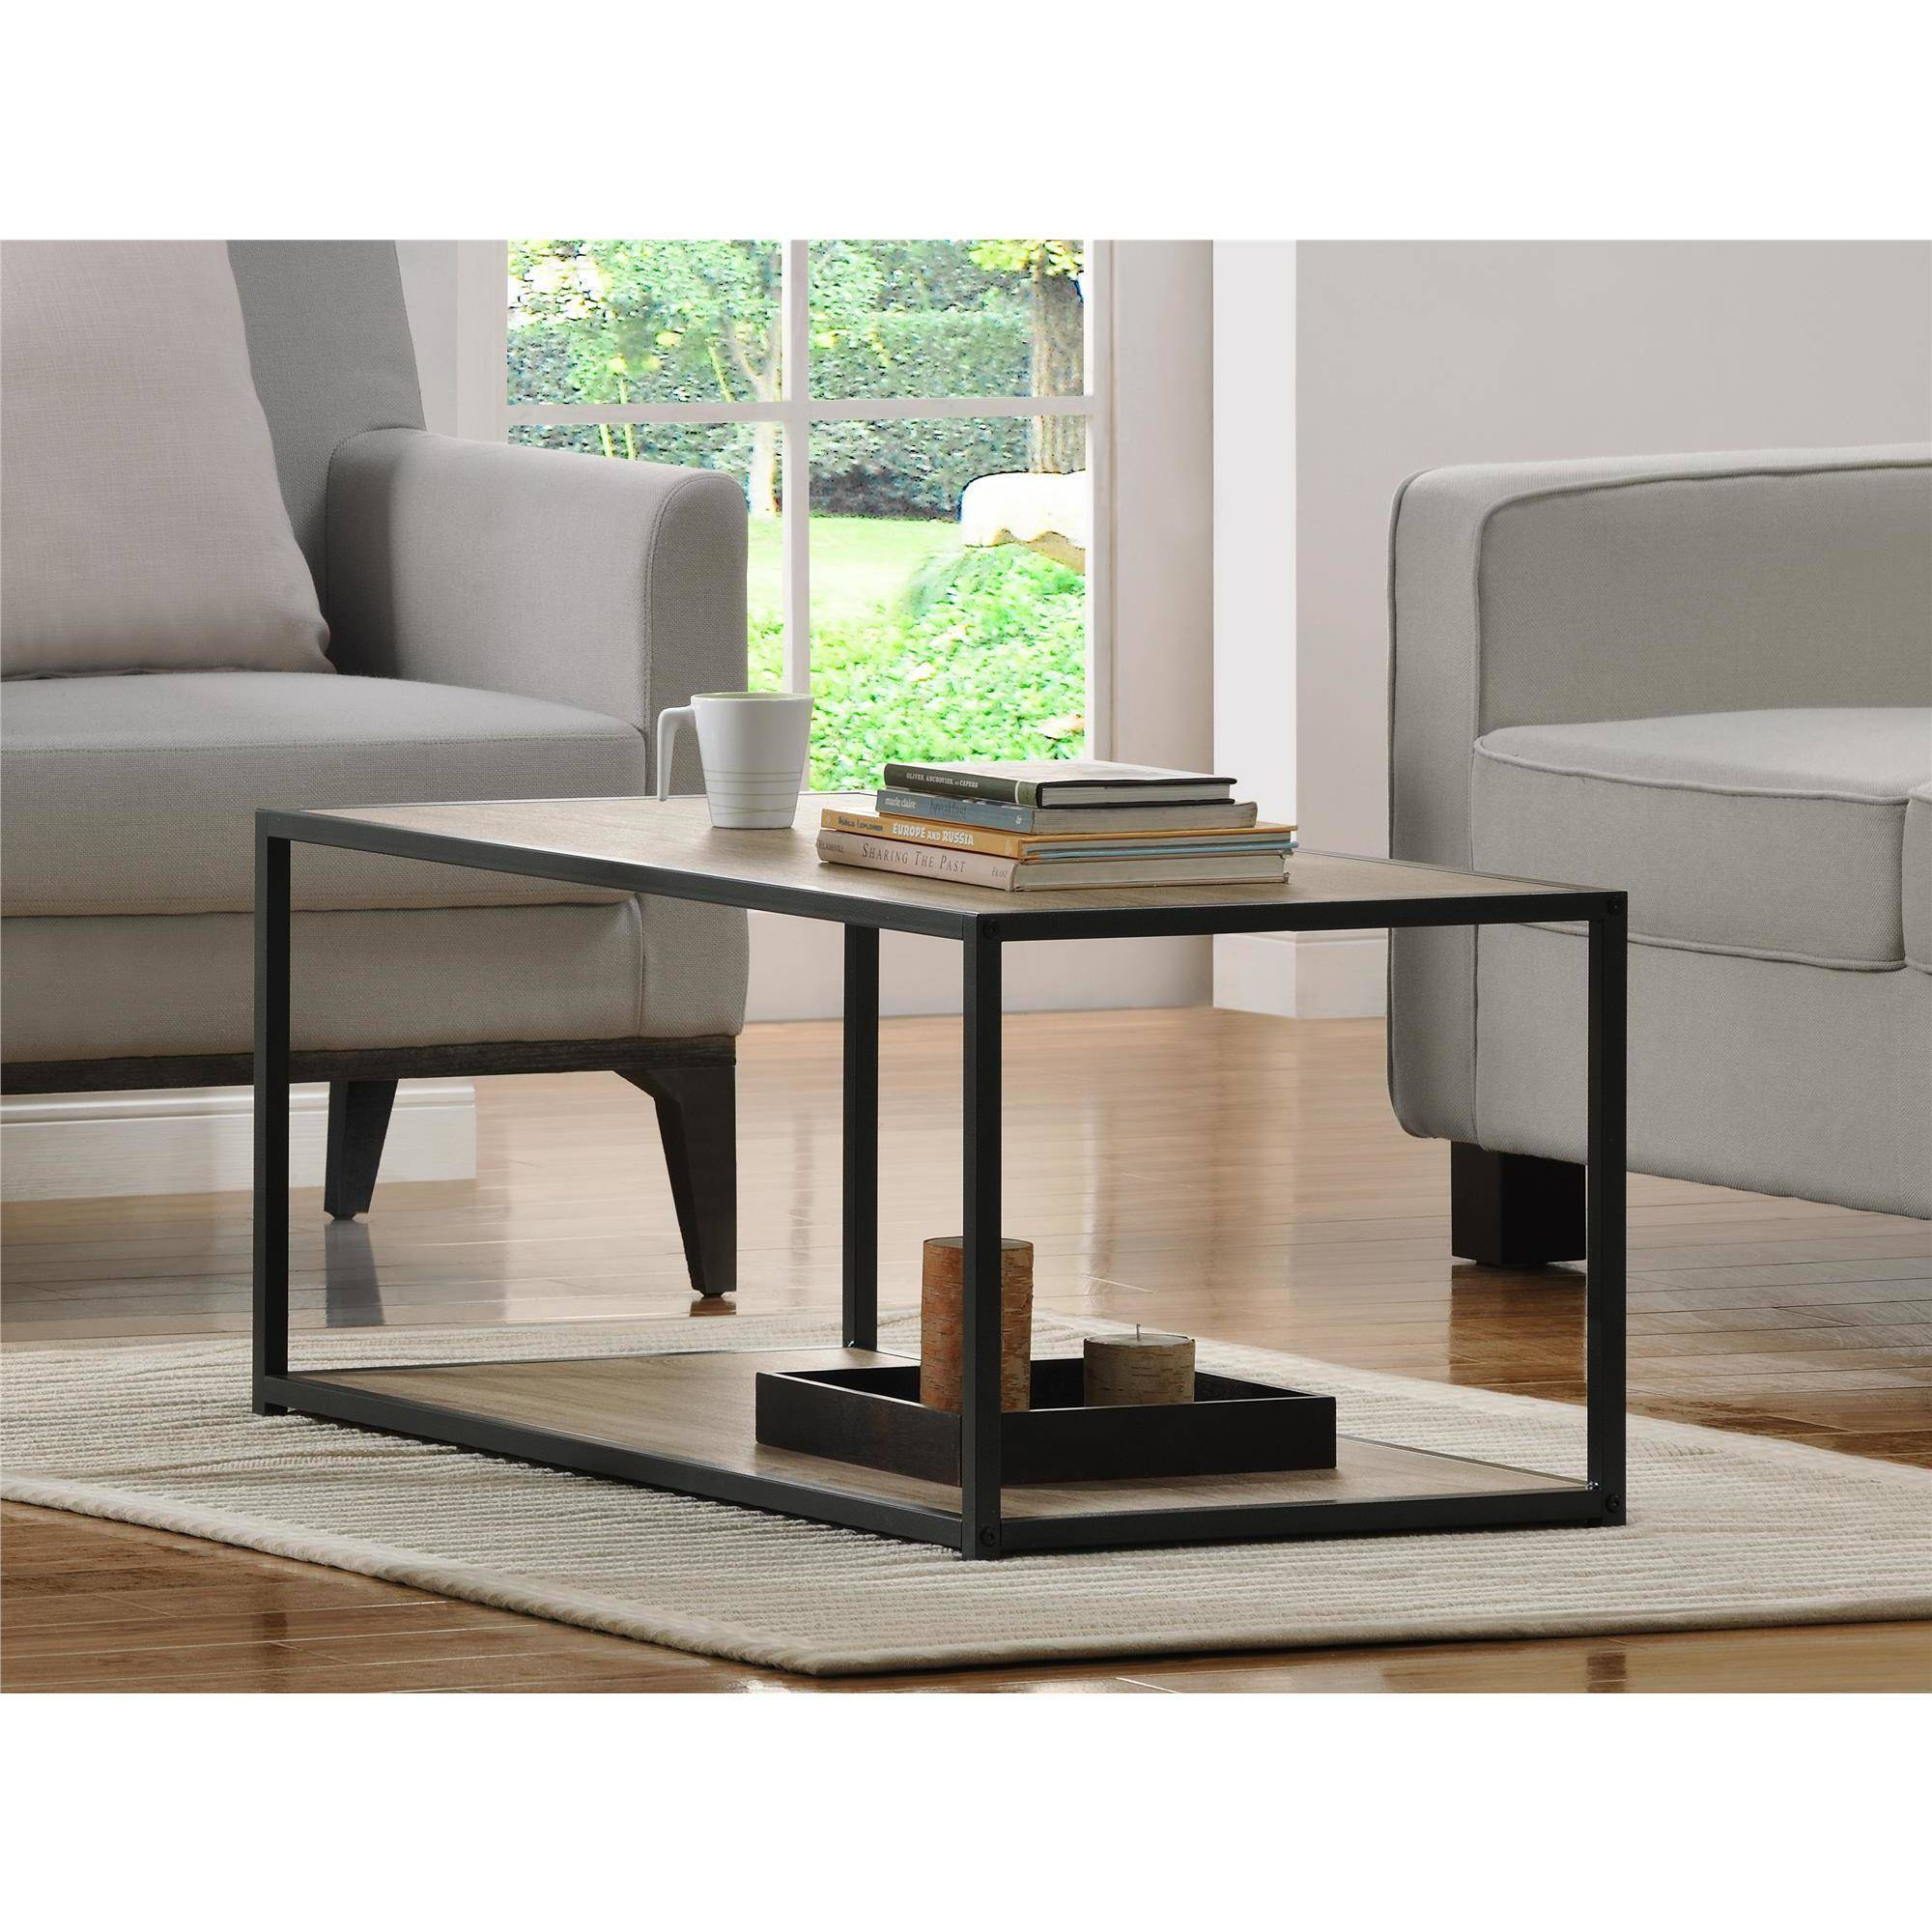 Ordinaire Ameriwood Home Canton Coffee Table With Metal Frame, Distressed Gray Oak